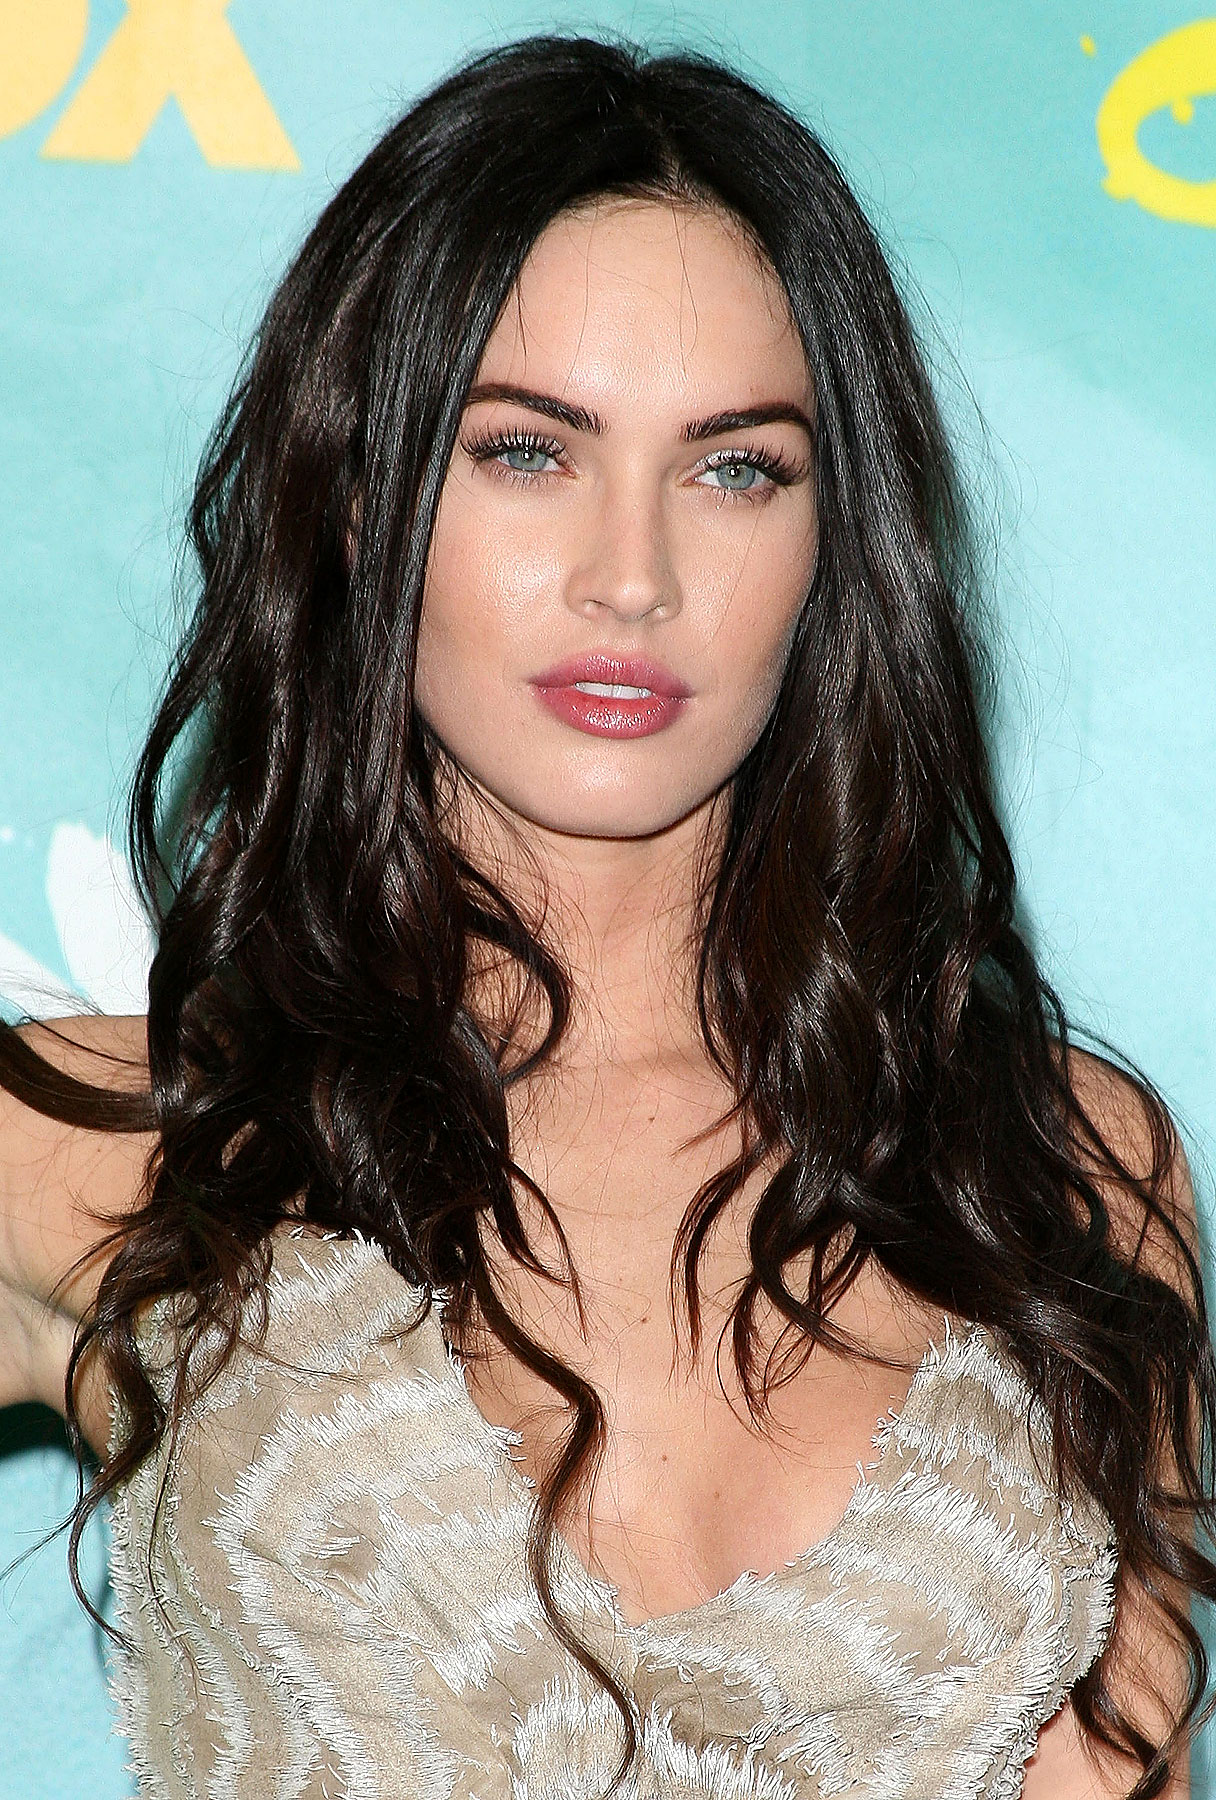 Megan Fox Wants to Challenge You to Xbox